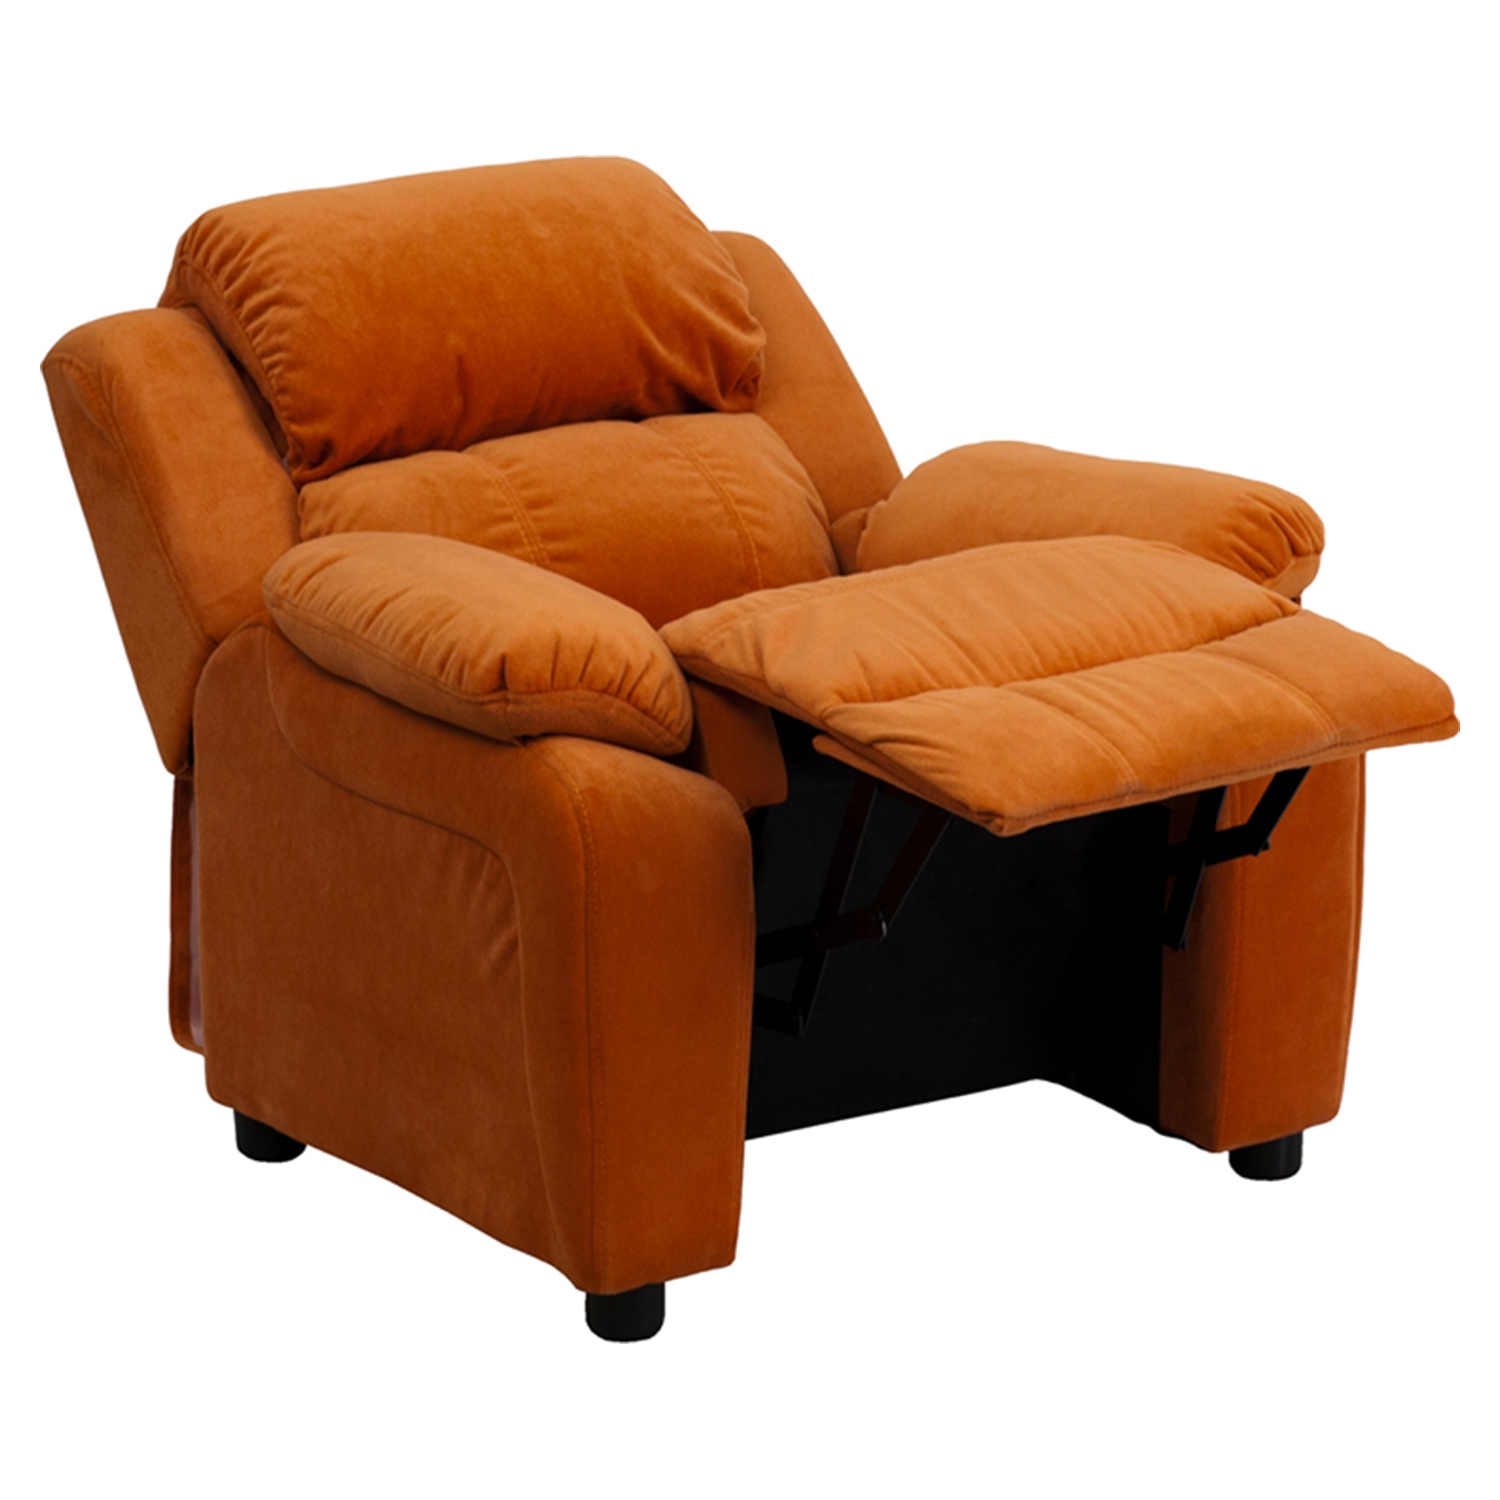 ... Deluxe Padded Upholstered Kids Recliner - Storage Arms Orange Microfiber - FLSH-BT  sc 1 st  DCG Stores & Deluxe Padded Upholstered Kids Recliner - Storage Arms Orange ... islam-shia.org